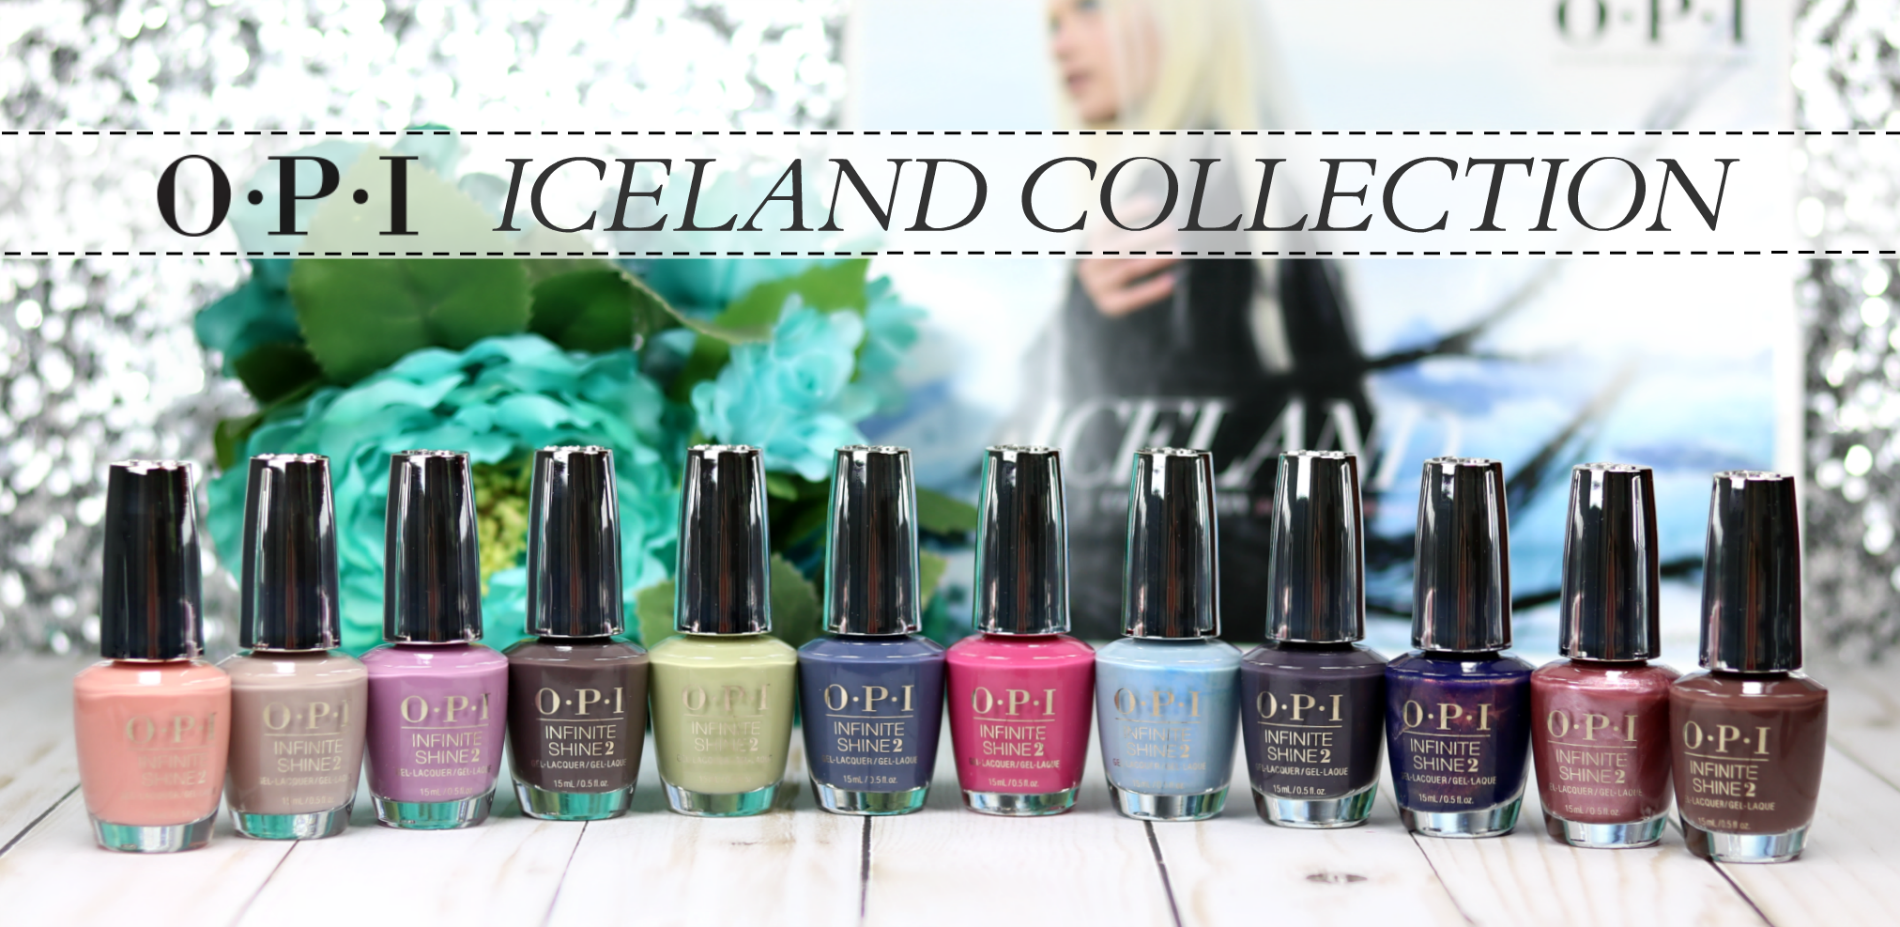 OPI Iceland Collection Review